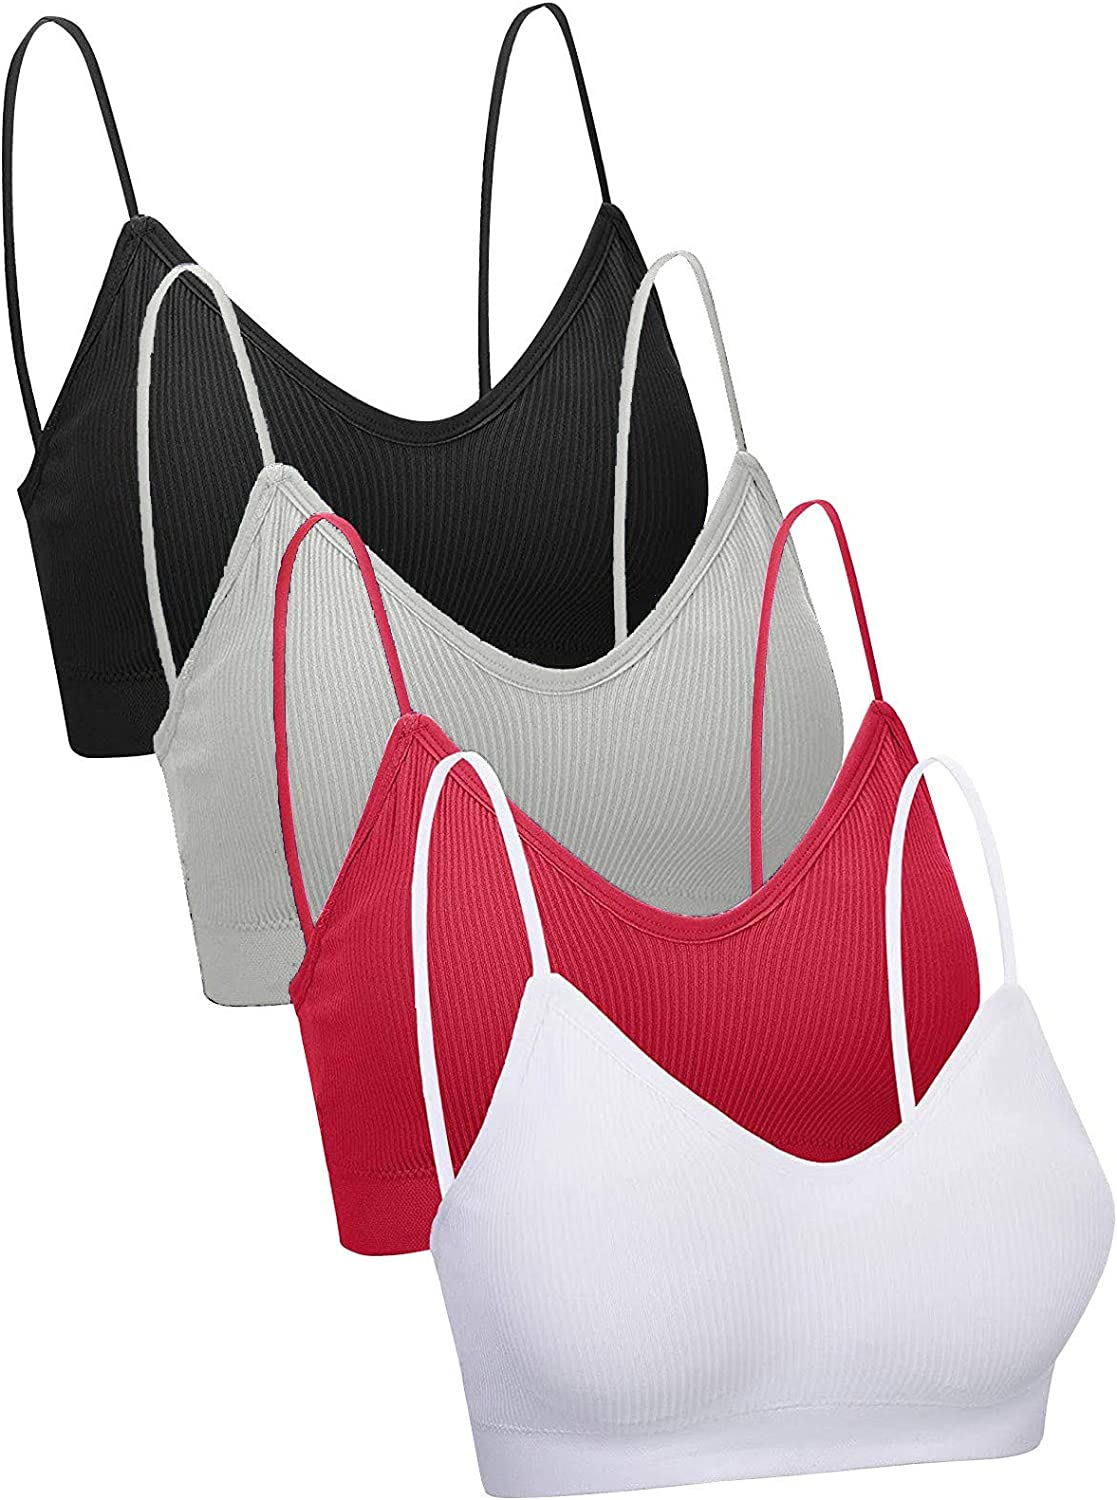 Inverlee 4 Pieces Sports Bras for Womens V Neck Bralette Seamless Padded Solid Color Workout Running Sleep Bra